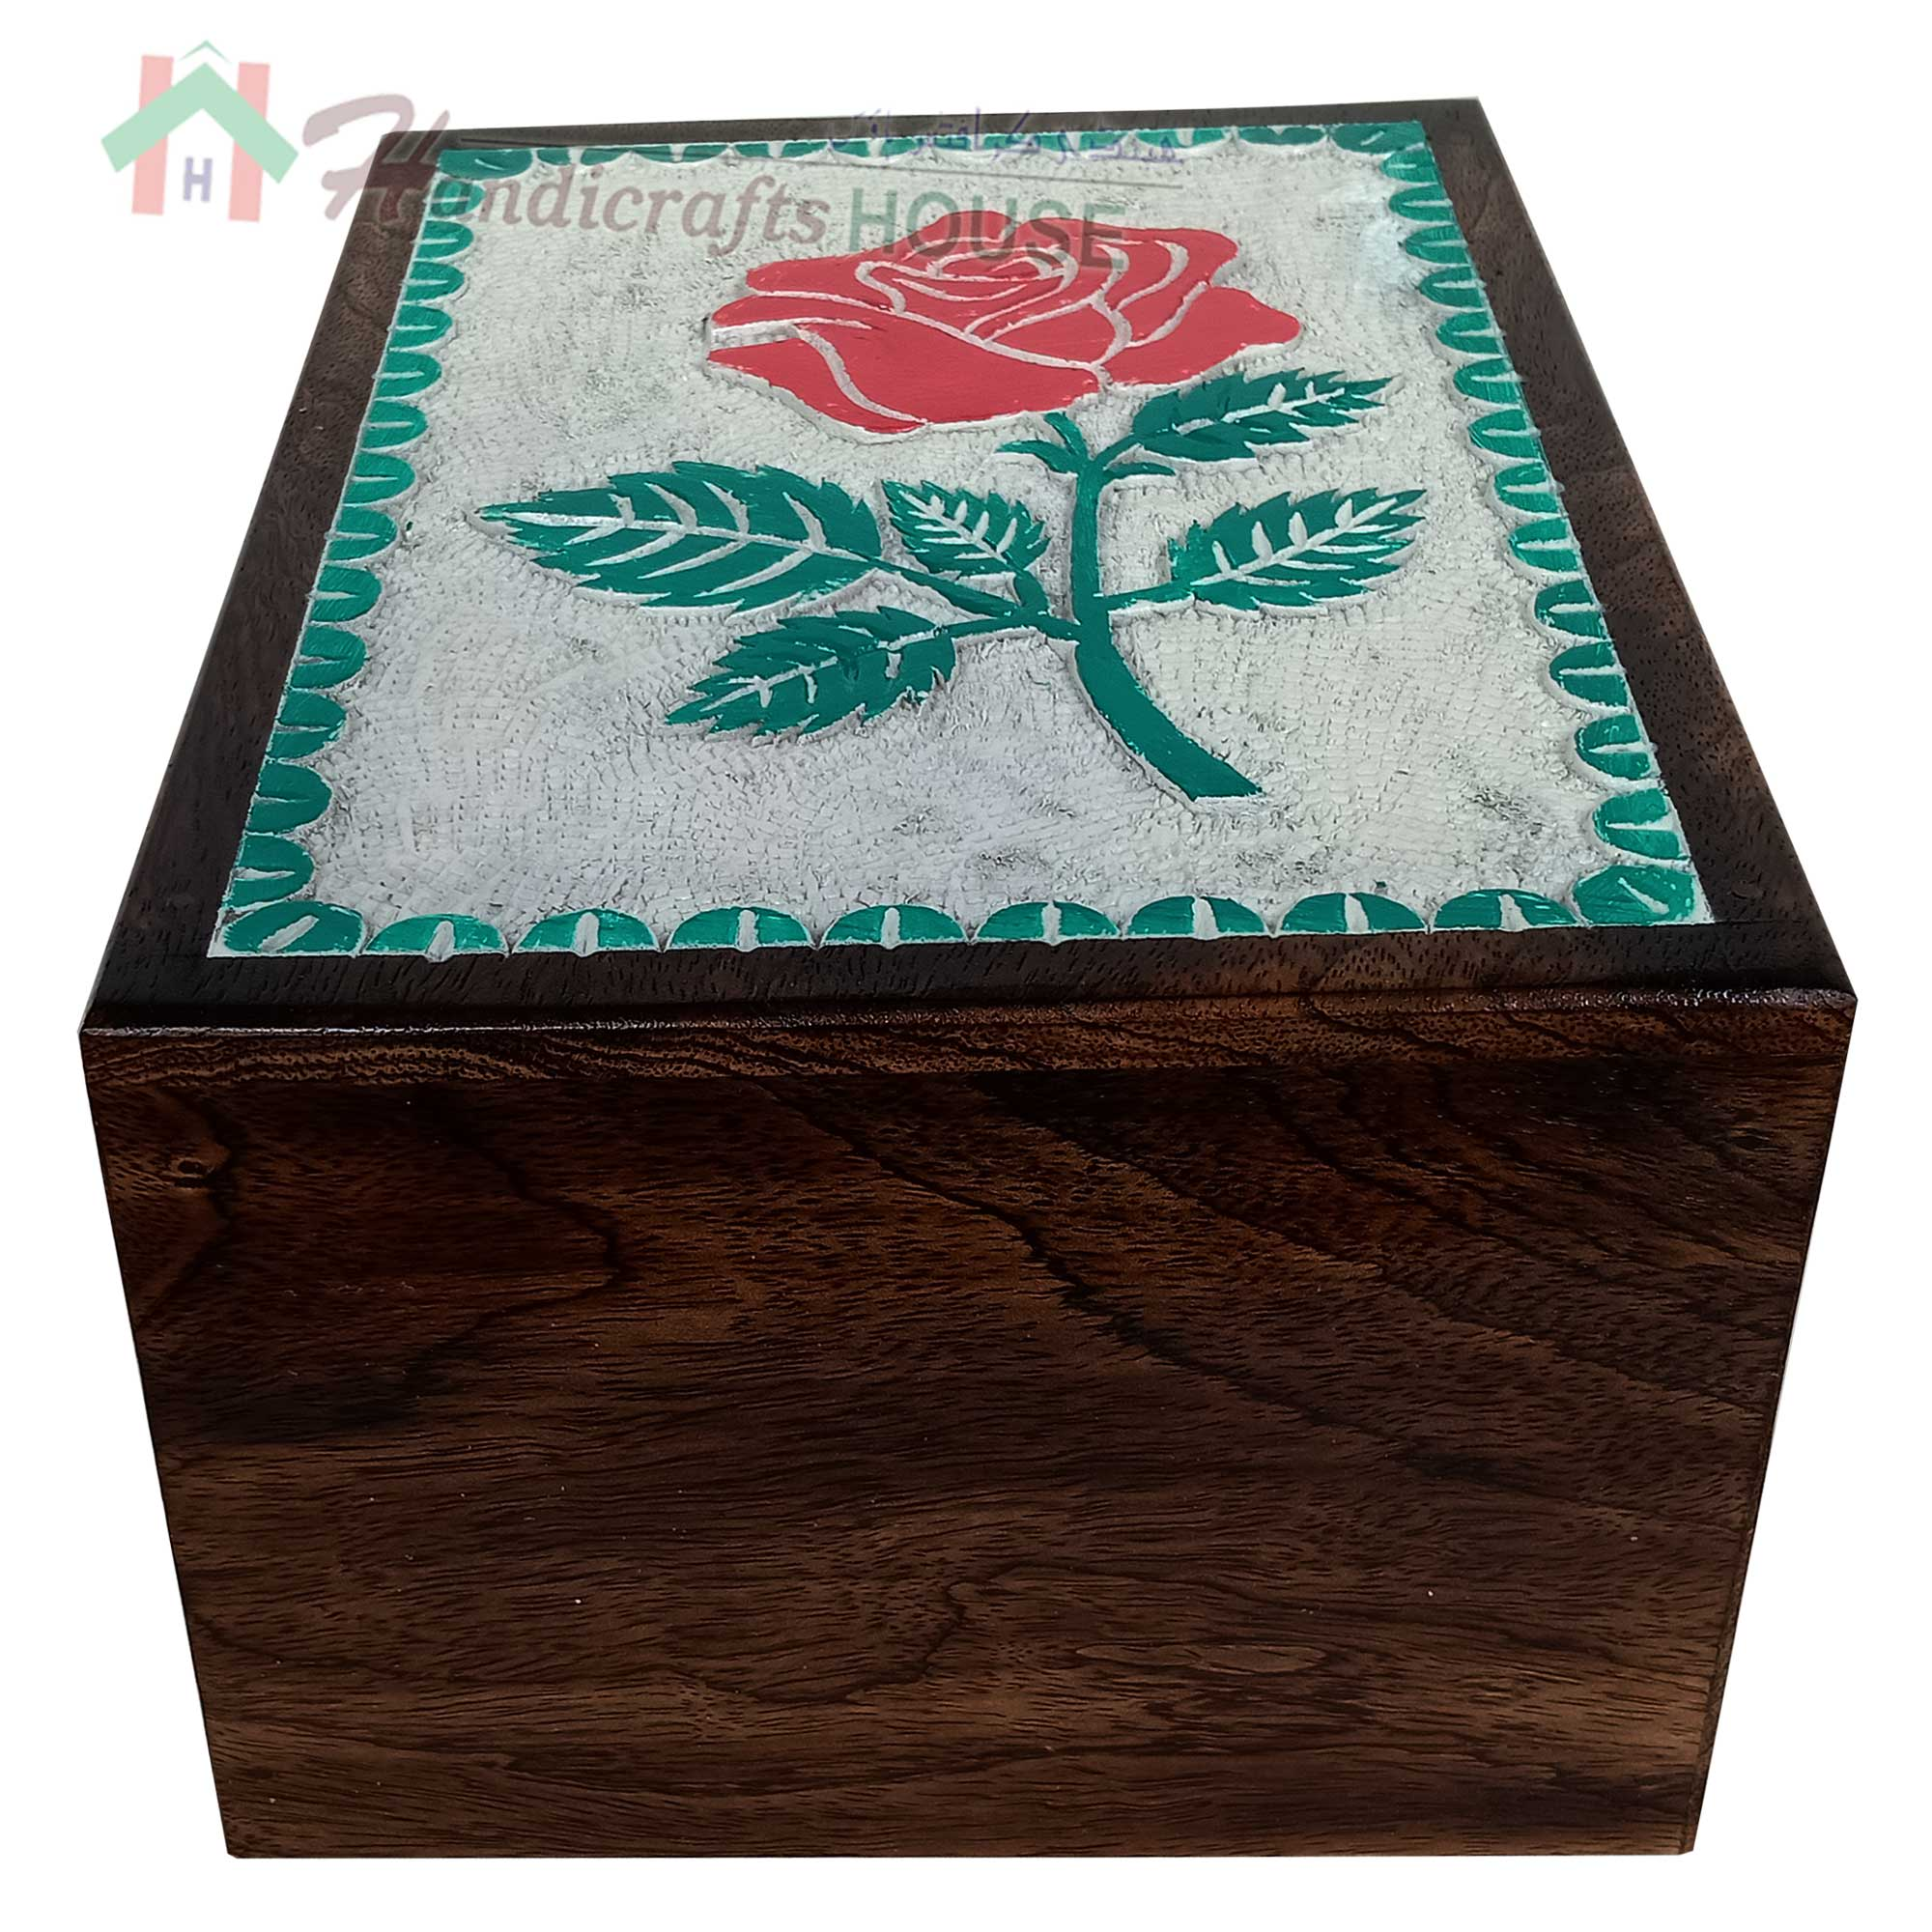 White and Green ROSE FLOWER Wooden Cremation Urns, Wood Funeral Urn for Human or Pet Ashes Adult - Hardwood Memorial Large Box